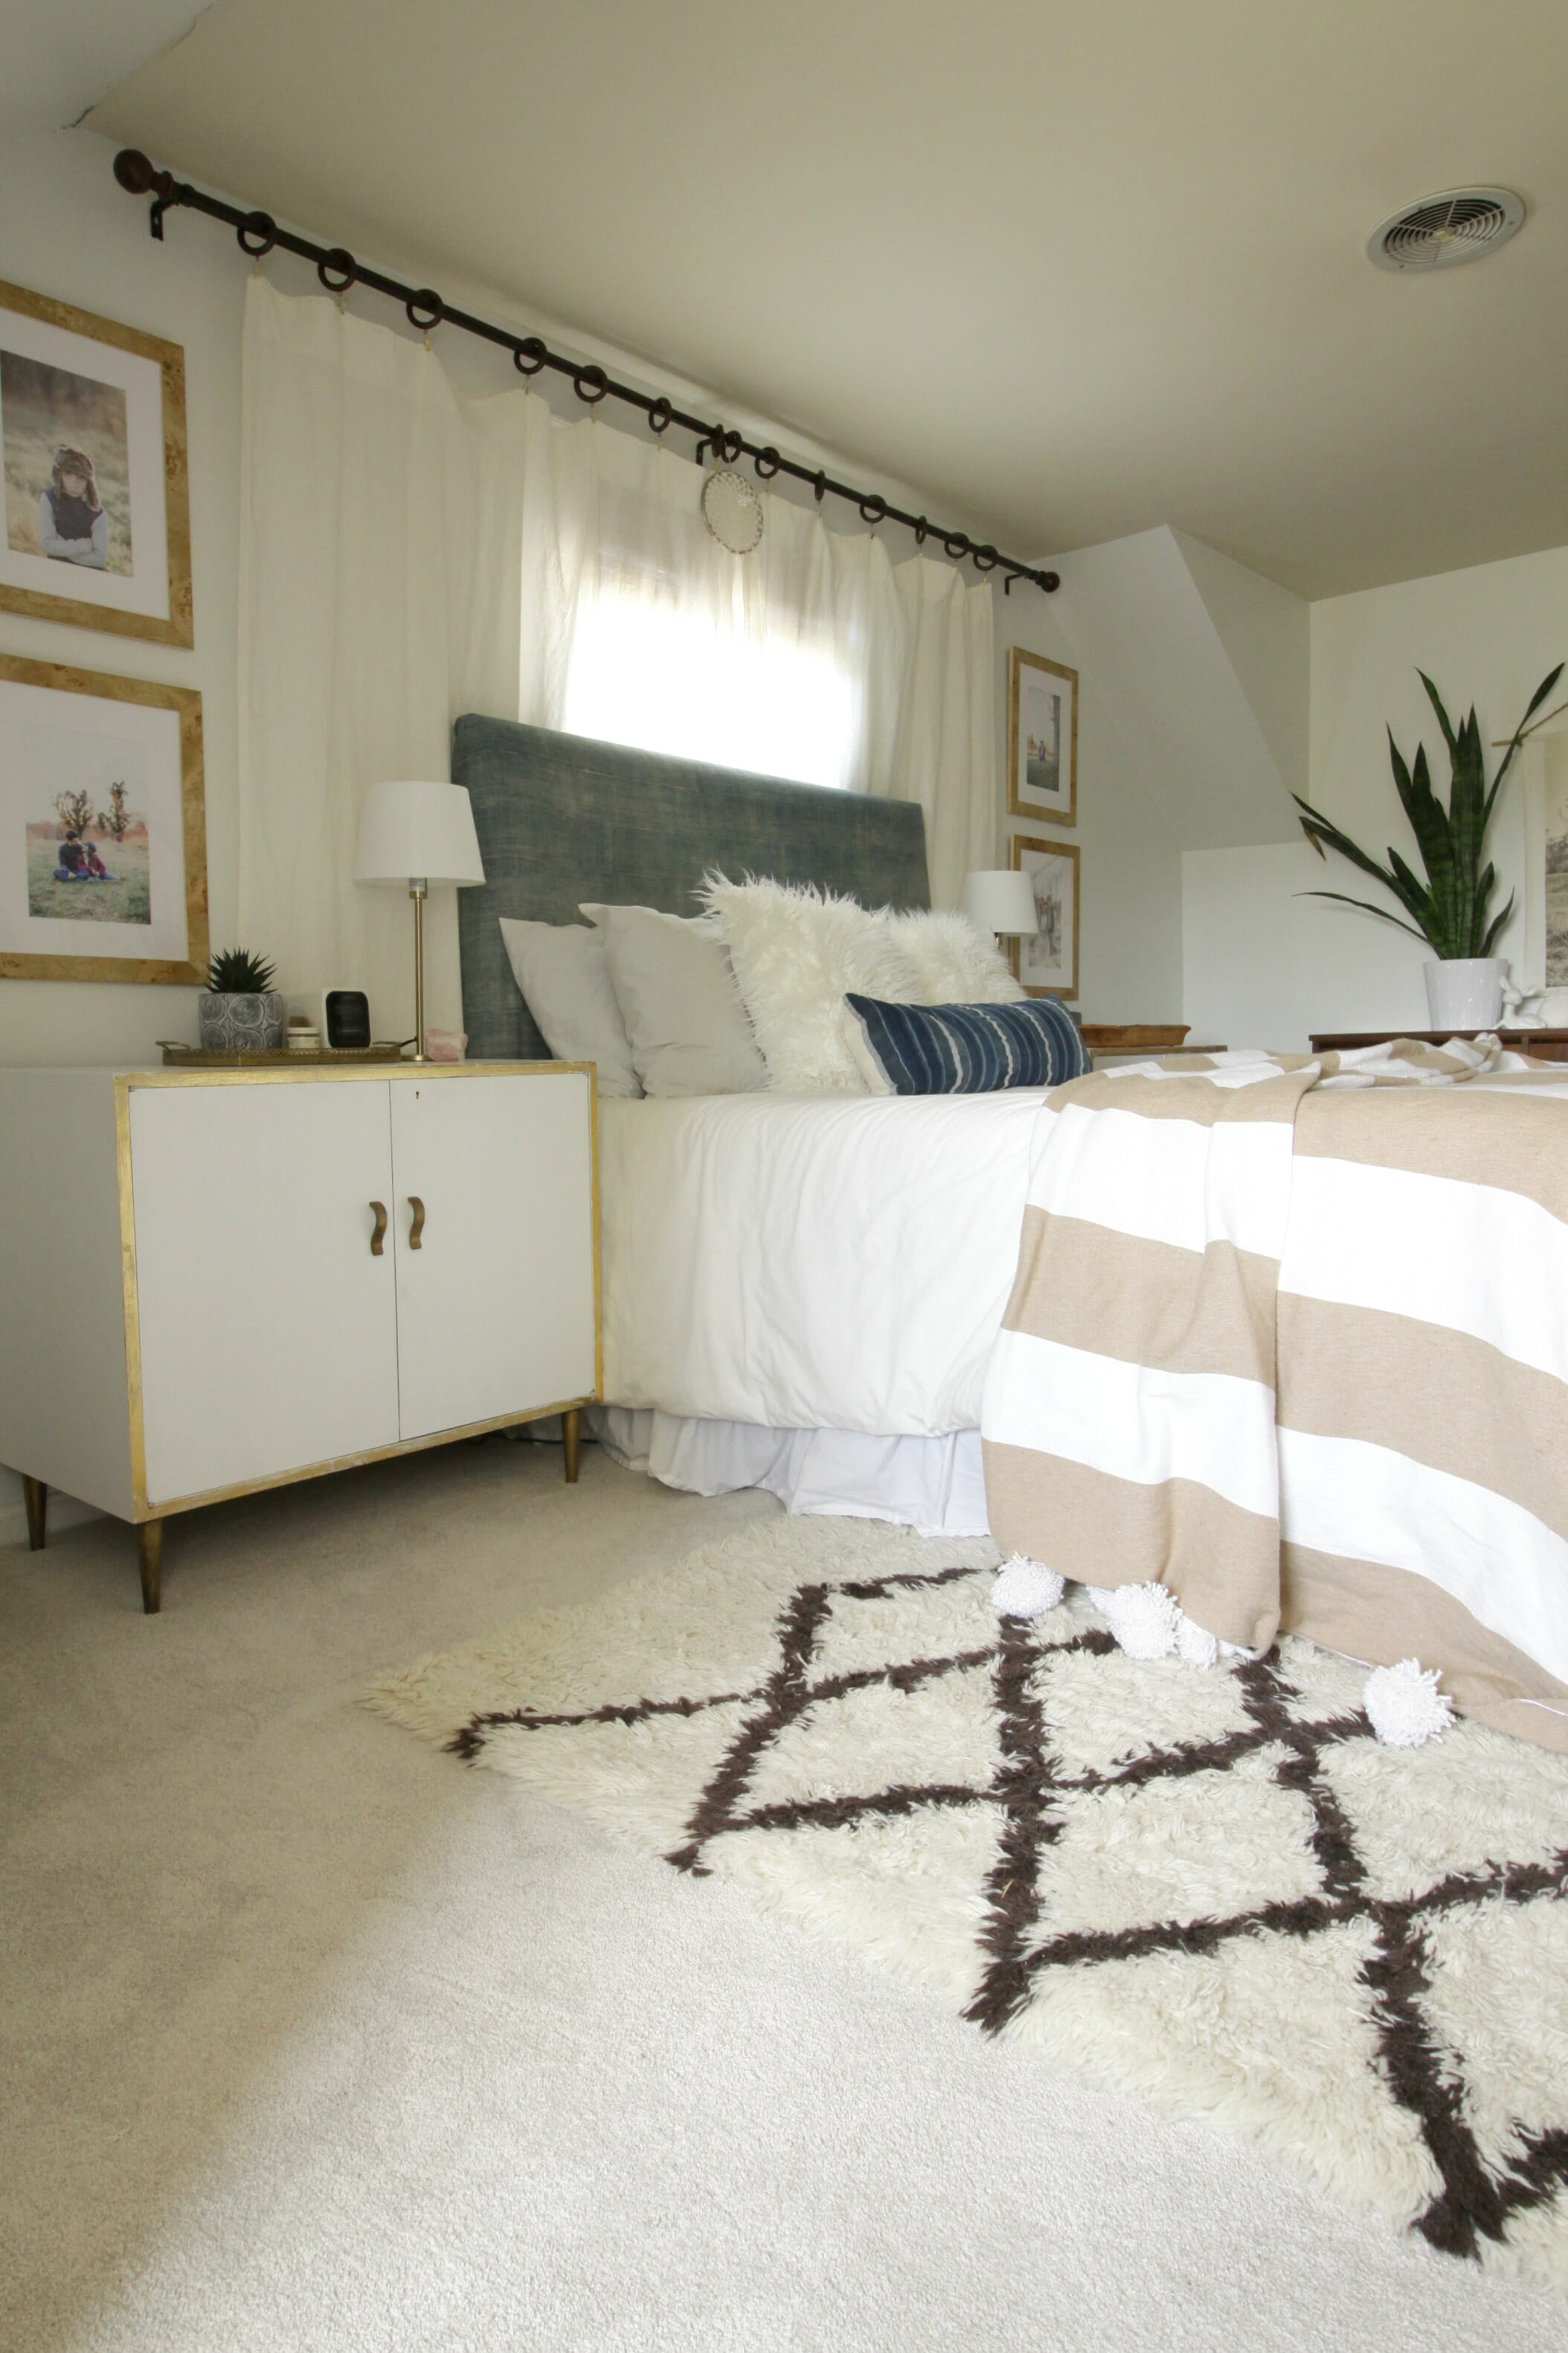 PetProof Bedroom Carpeting from The Home Depot - Cassie Bustamante